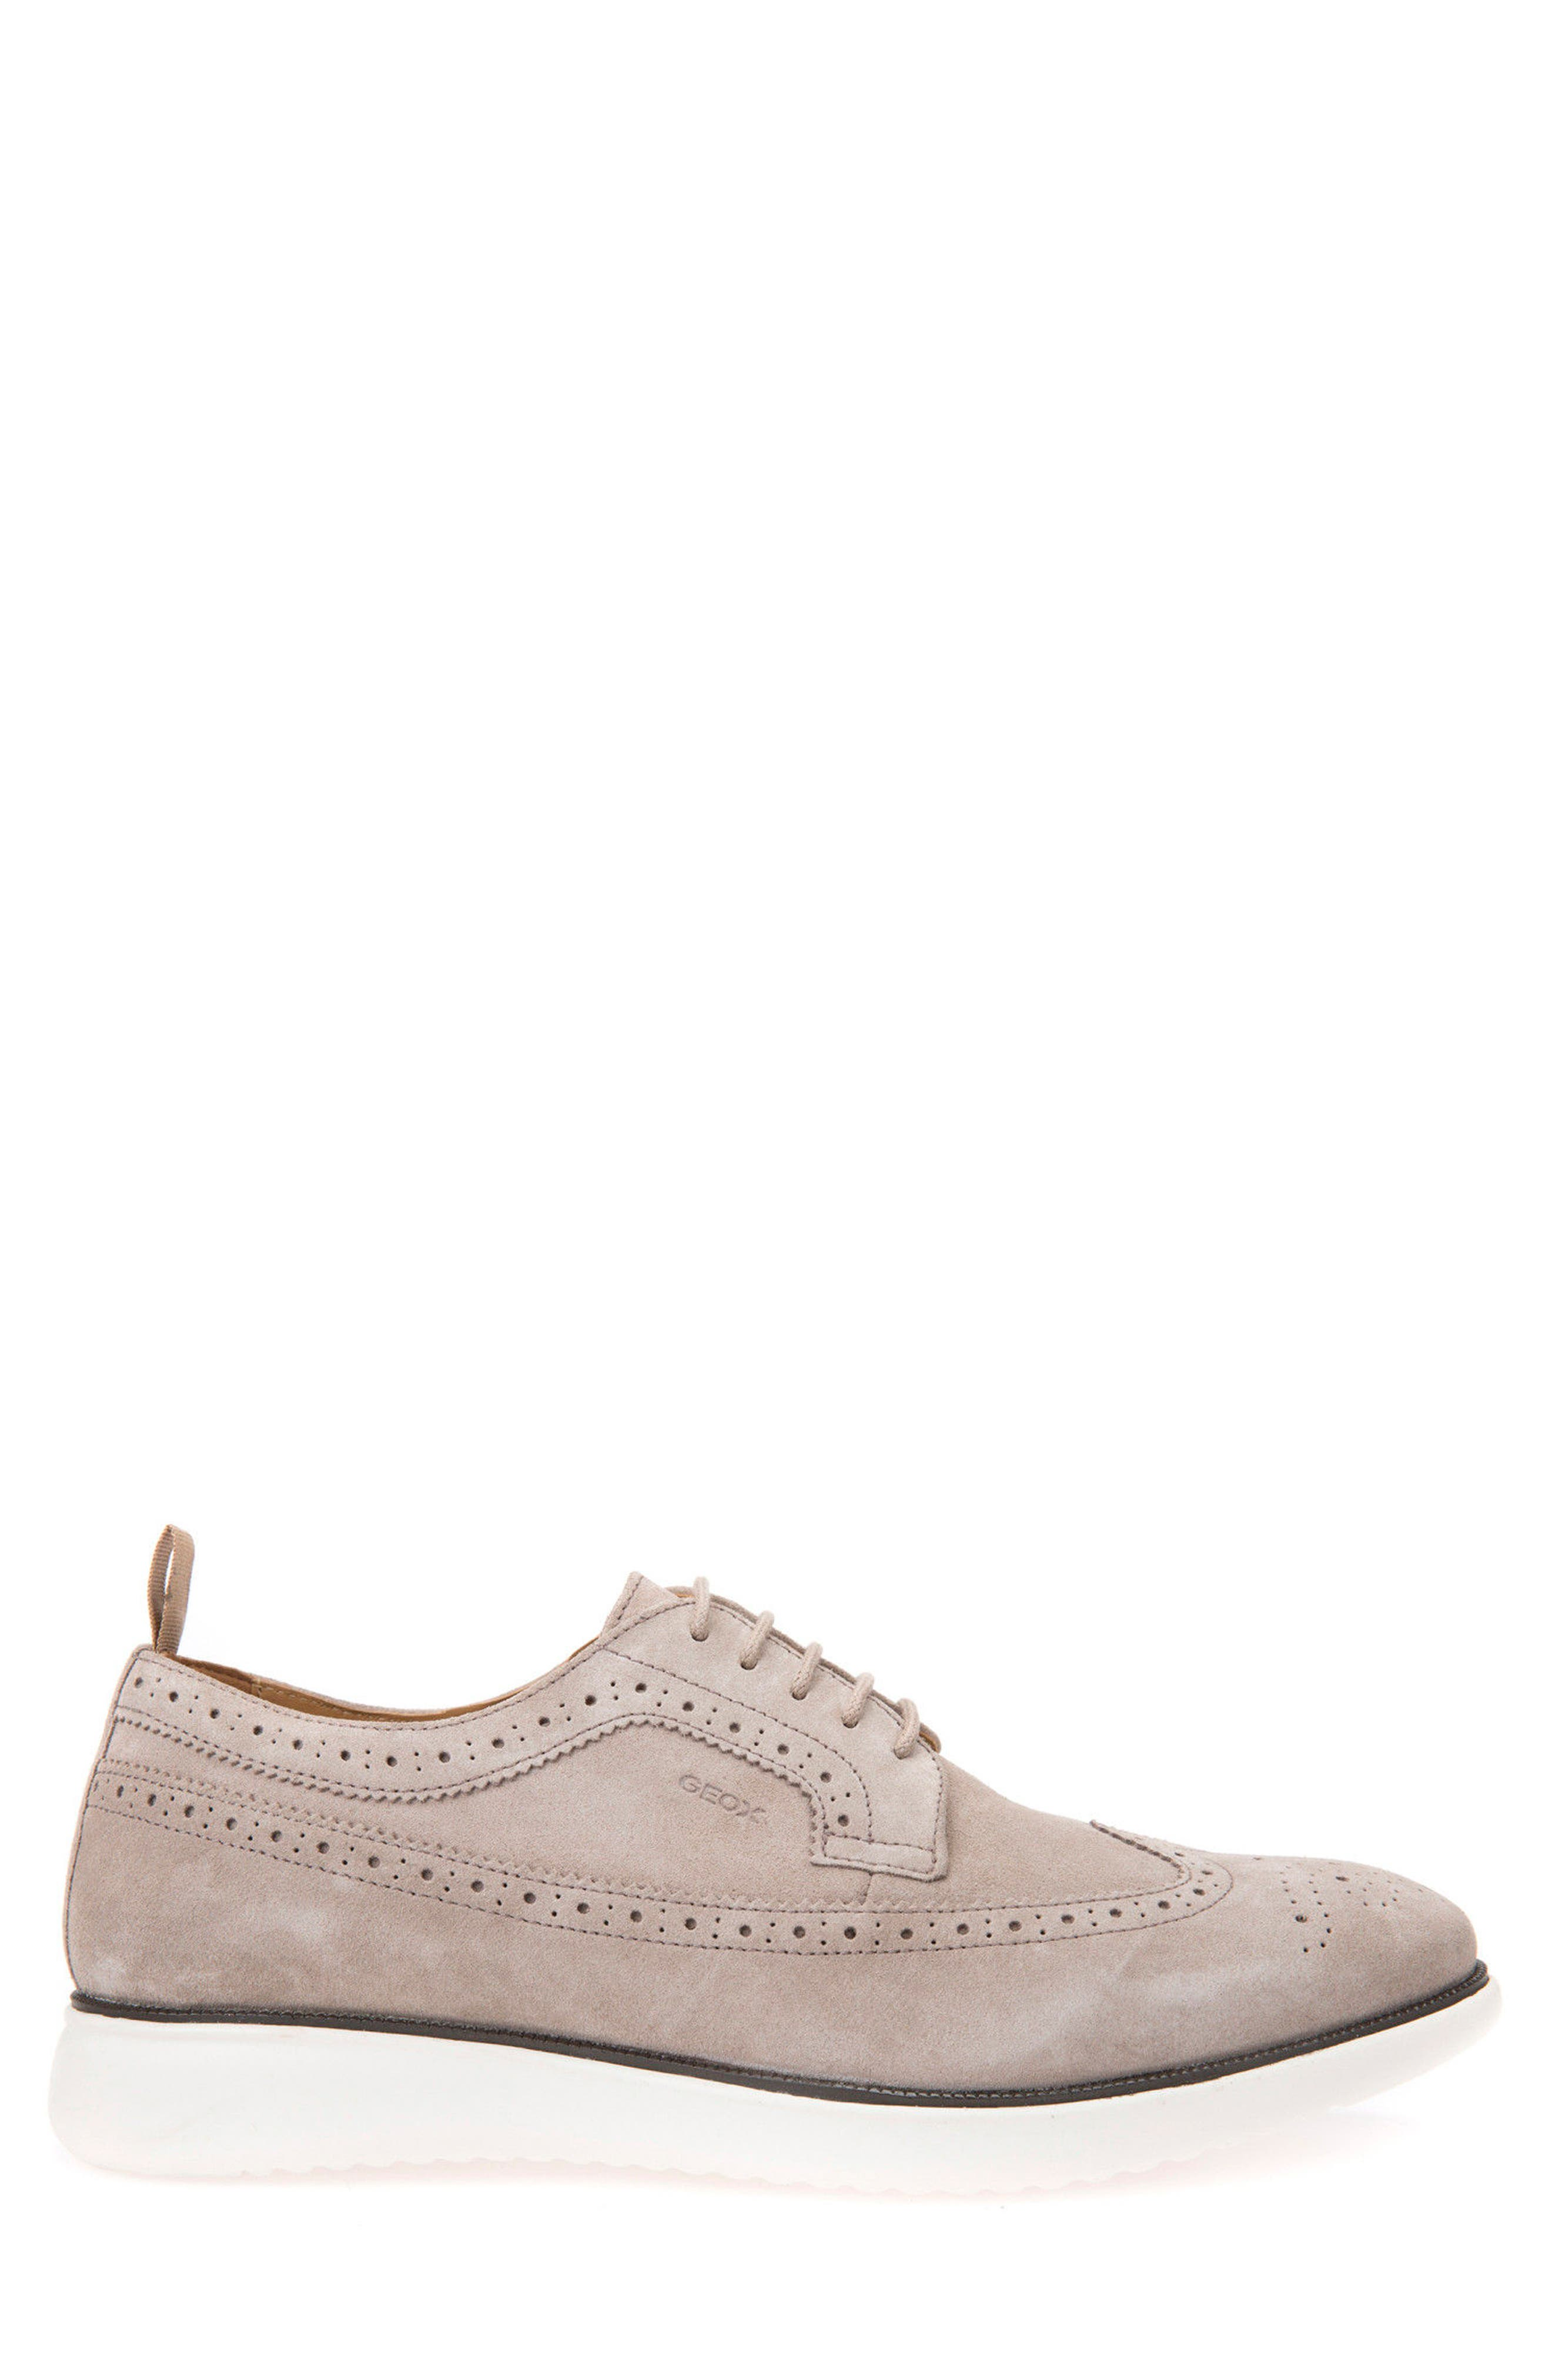 Winfred 2 Wingtip,                             Alternate thumbnail 3, color,                             Taupe Suede